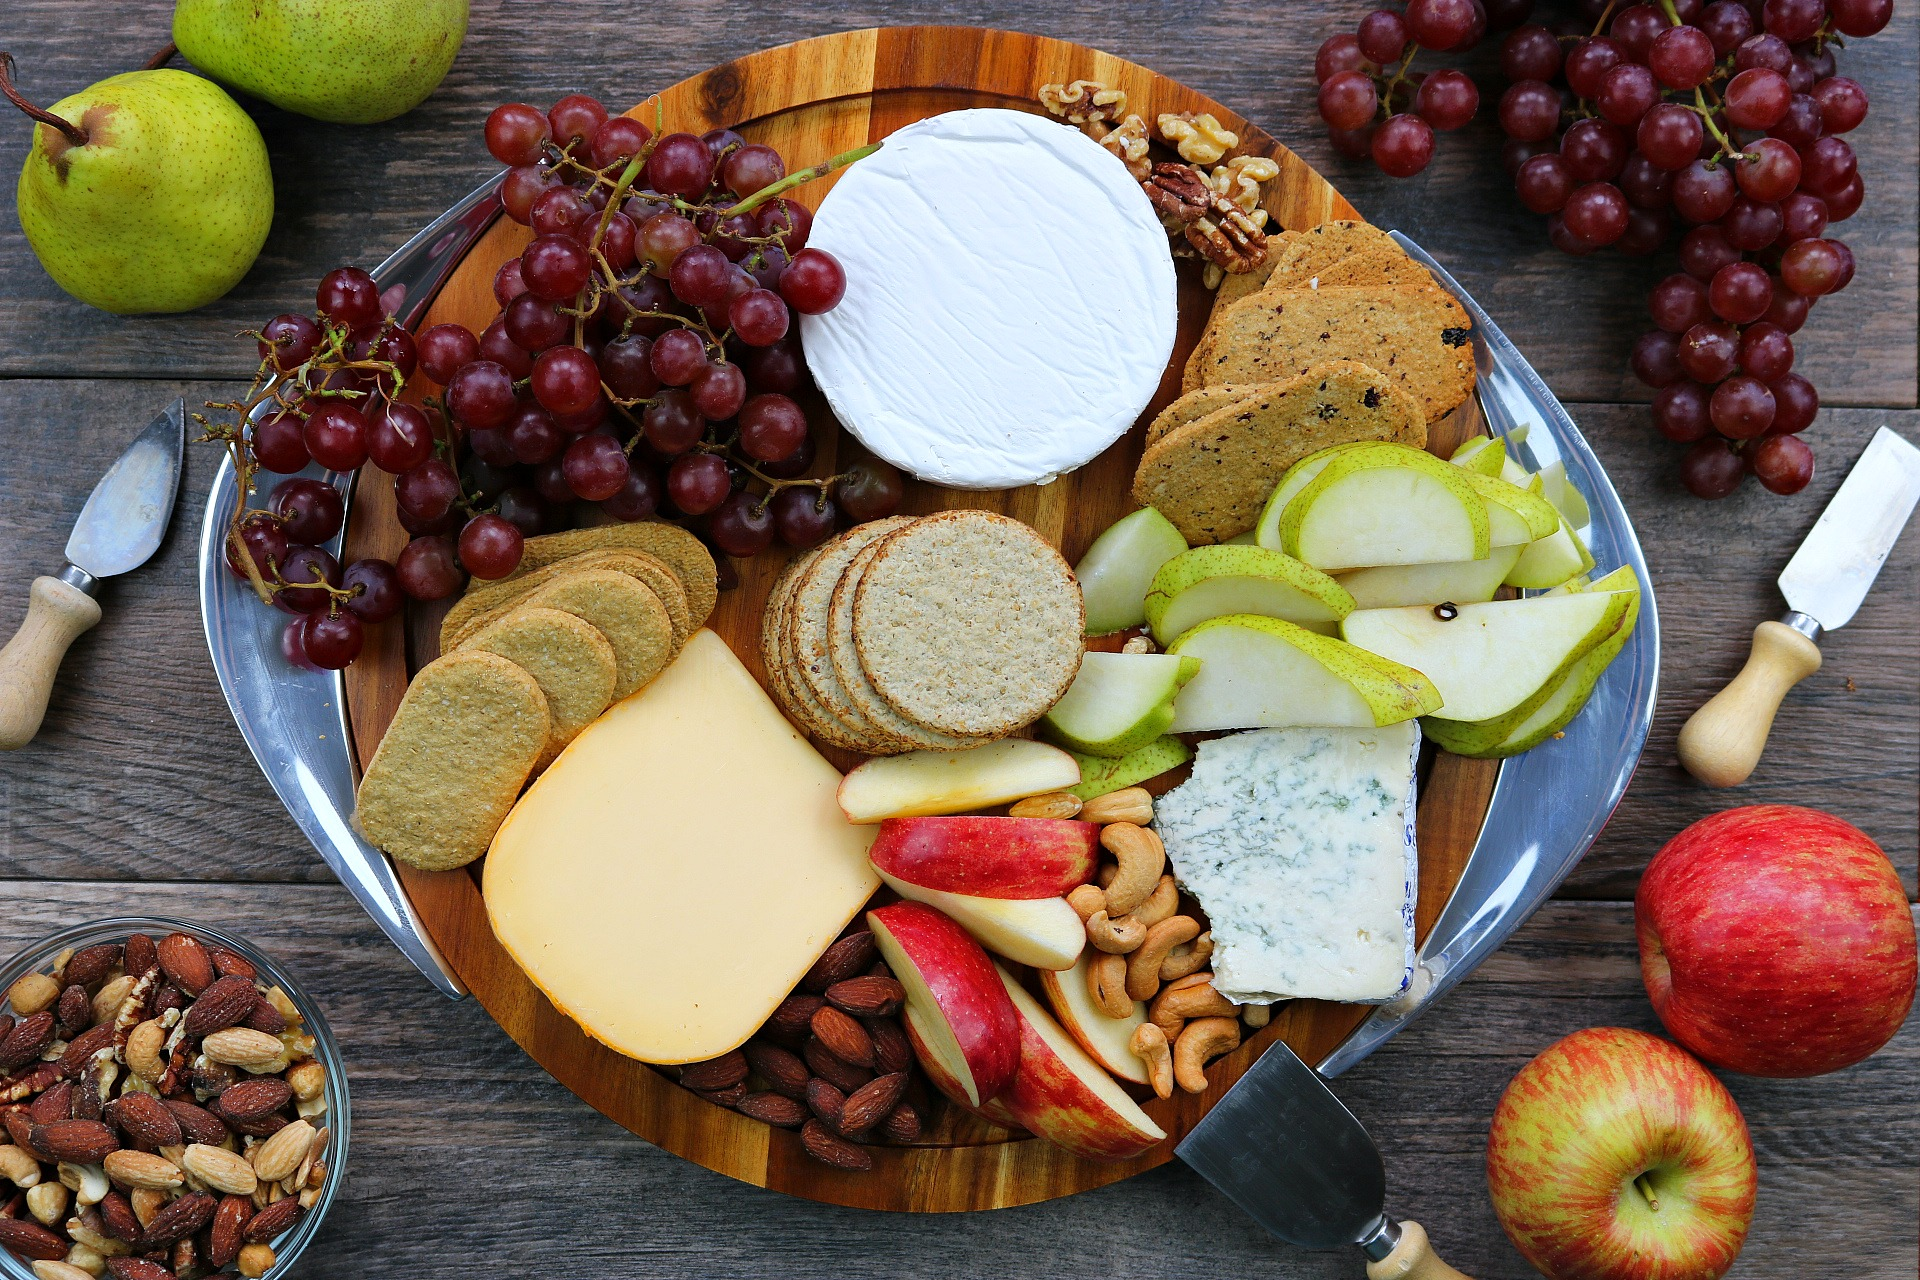 5 Steps To The Perfect Fruit And Cheese Platter